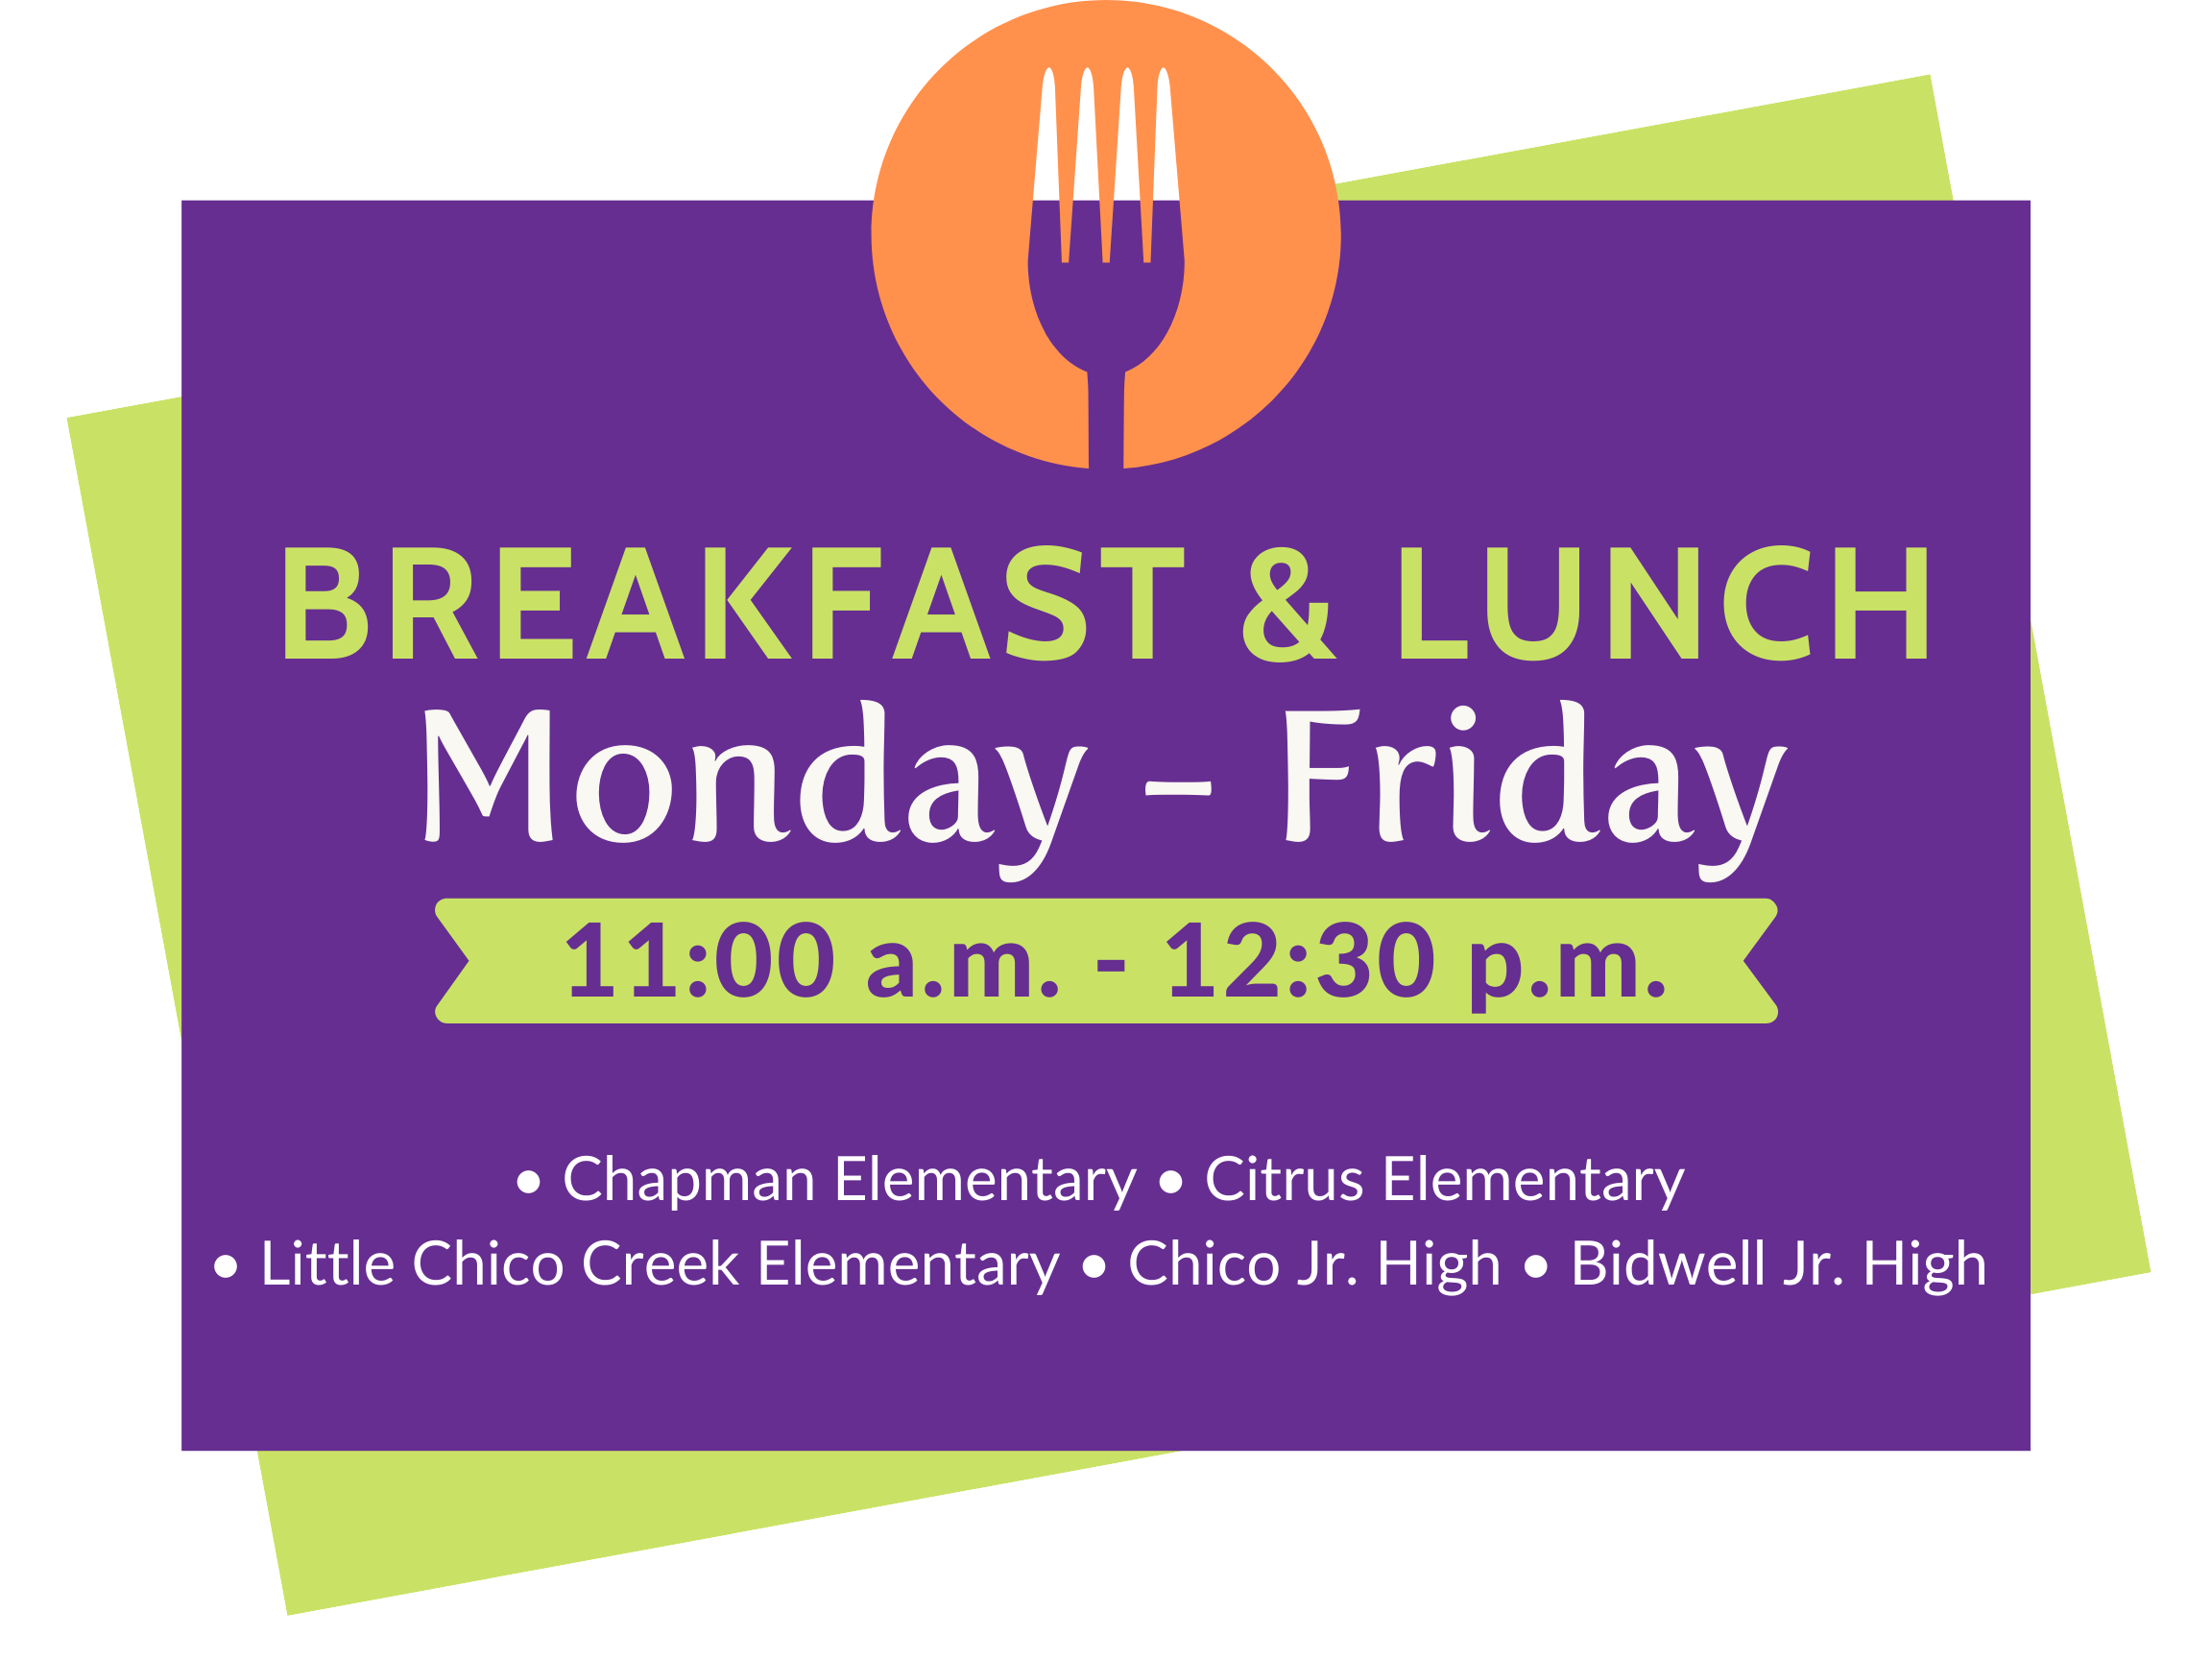 2020 Nutrition Services. Breakfast and lunch, Monday through Friday. 11:00 a.m. to 12:30 p.m. at the following locations: Chapman Elementary, Citrus Elementary, Little Chico Creek Elementary, Chico Jr. High, and Bidwell Jr. High.